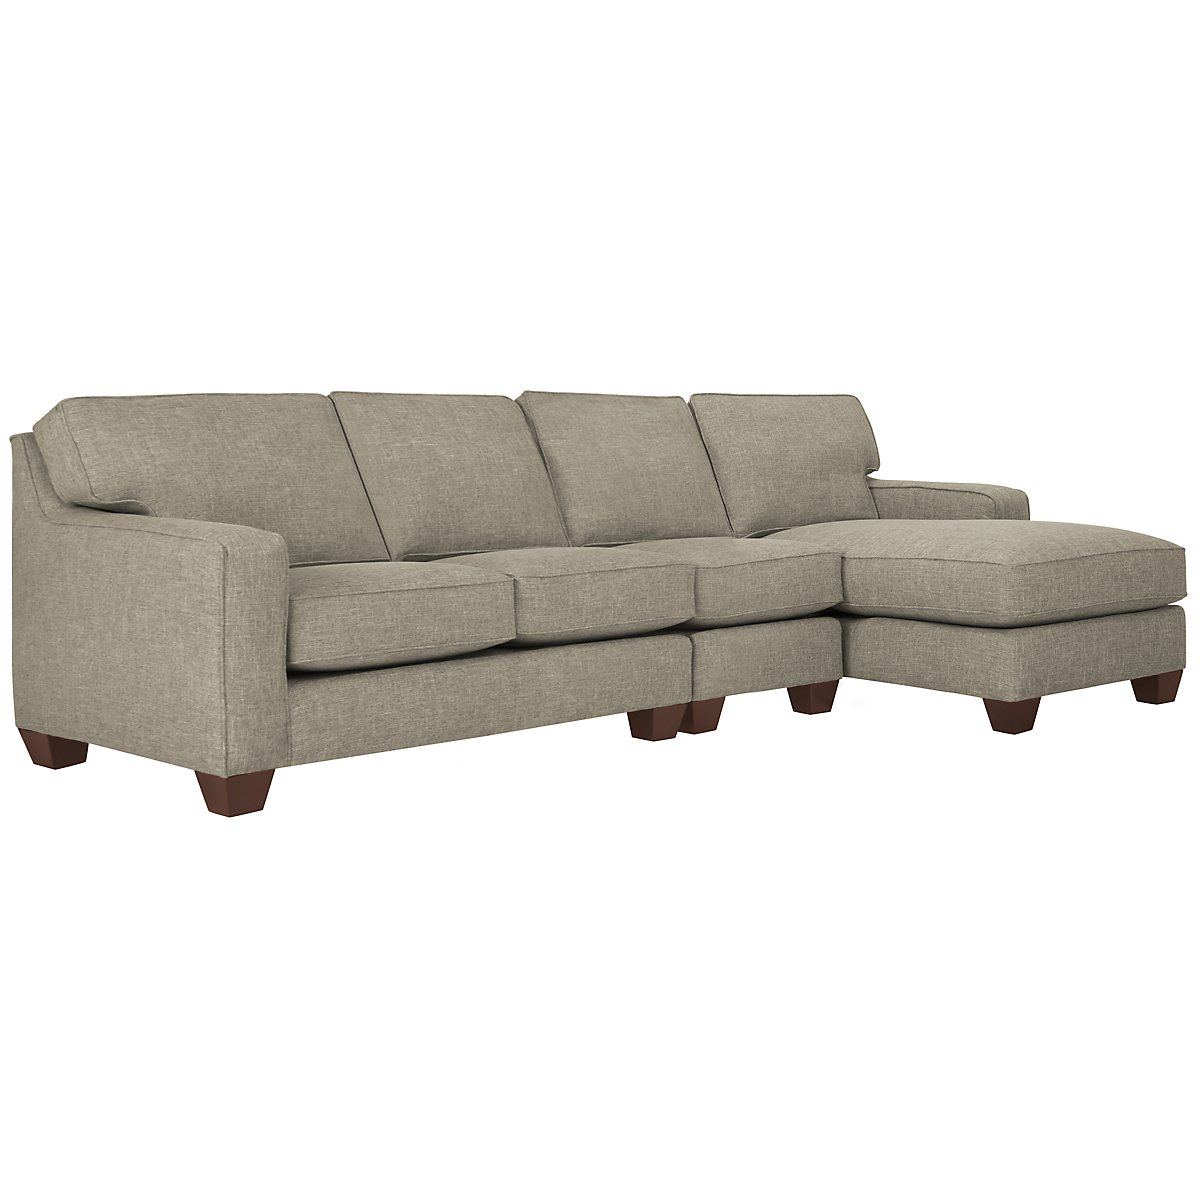 City furniture york pewter fabric medium right chaise for Chaise york